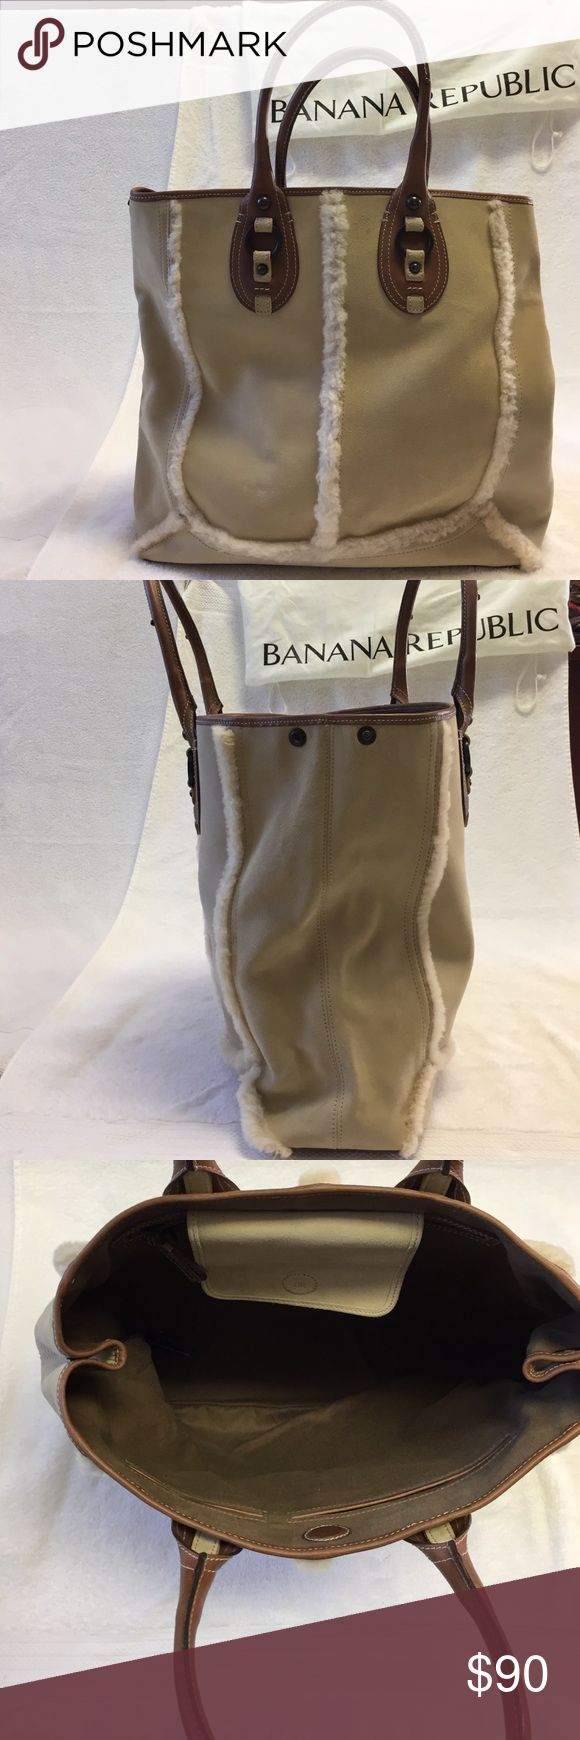 Banana Republic Sheepskin Tote Bag Beautiful sheepskin tote in excellent condition. Dust cover included. Banana Republic Bags Totes